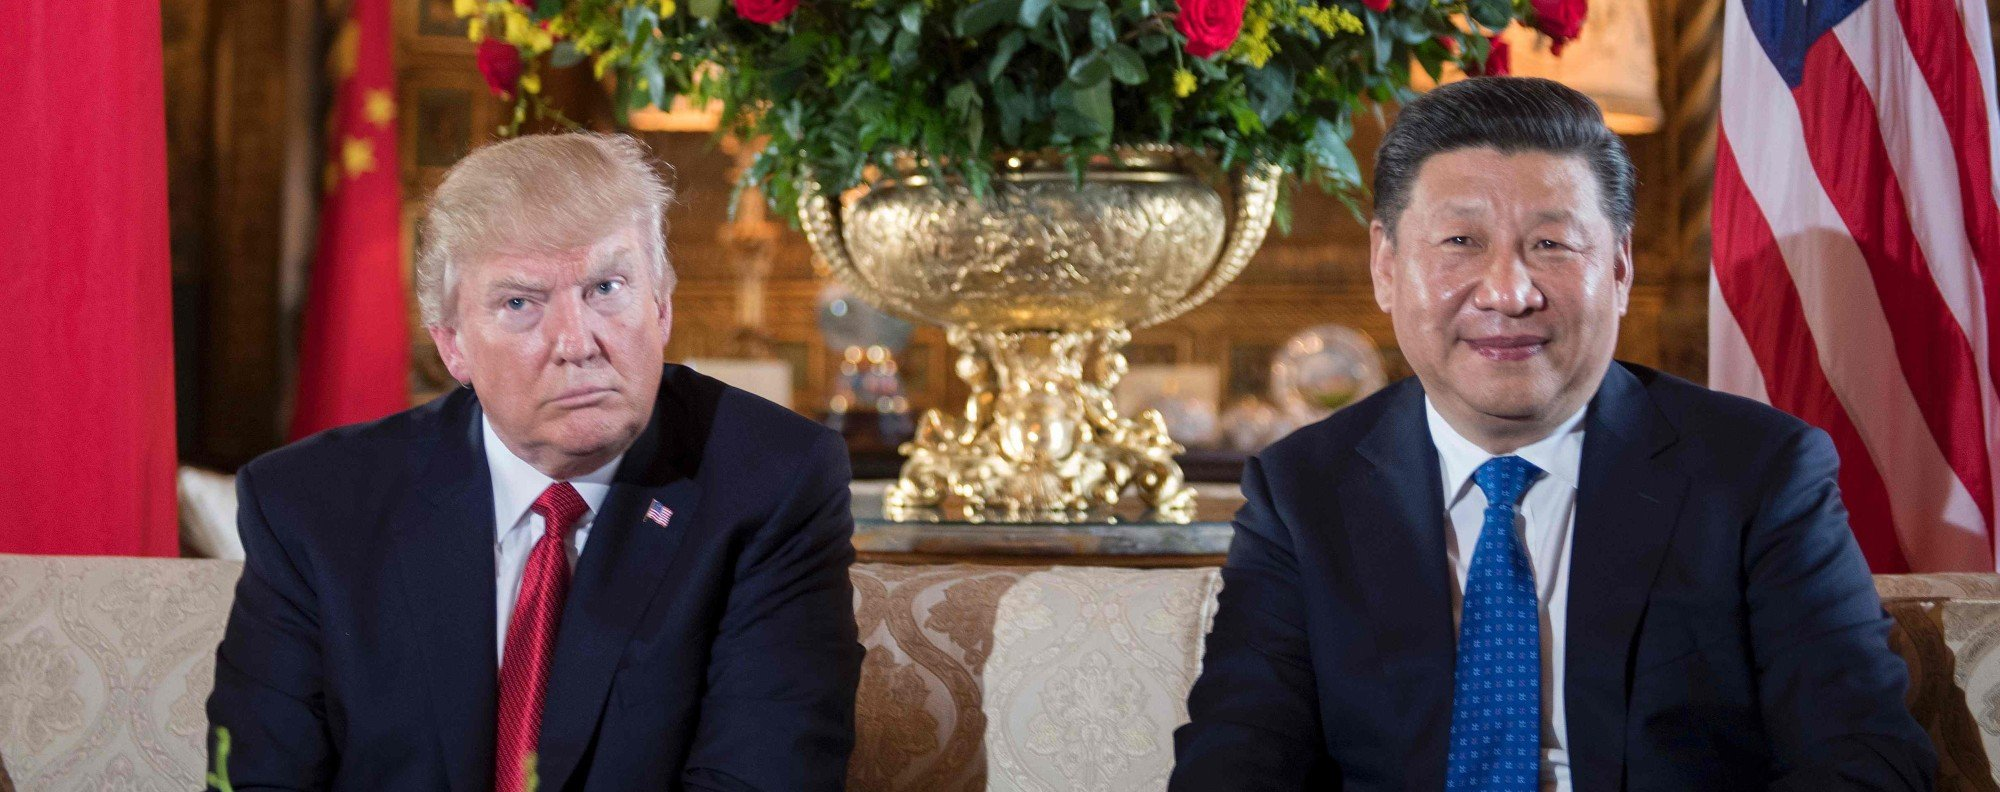 Donald Trump and Xi Jinping in Mar-a-Lago. Photo: AFP